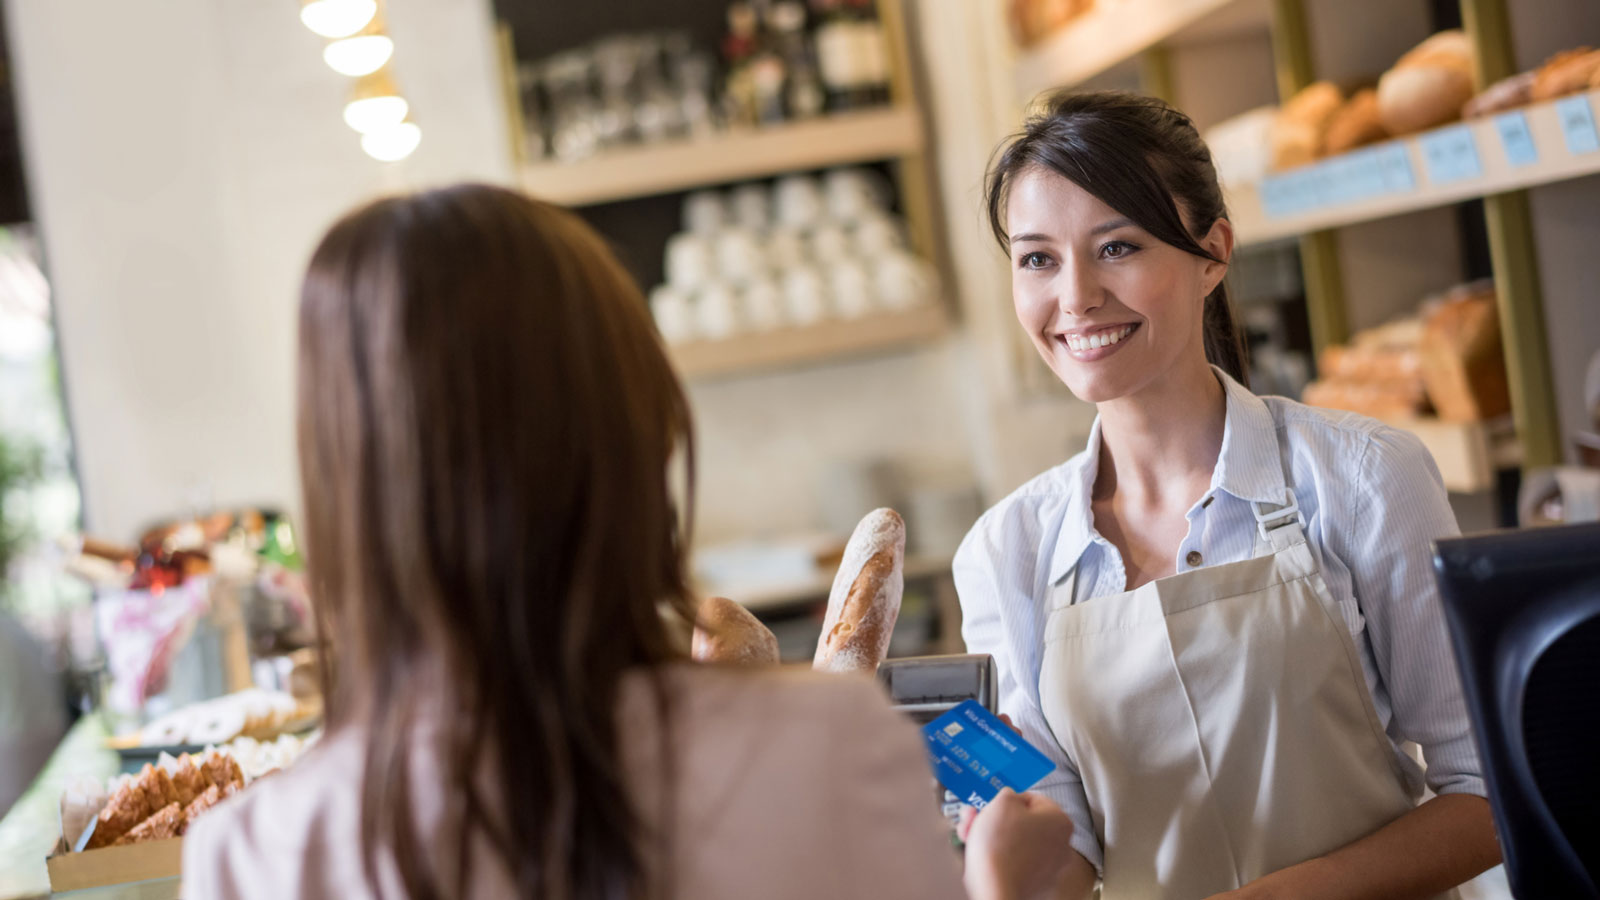 Woman paying with credit card at a bakery.